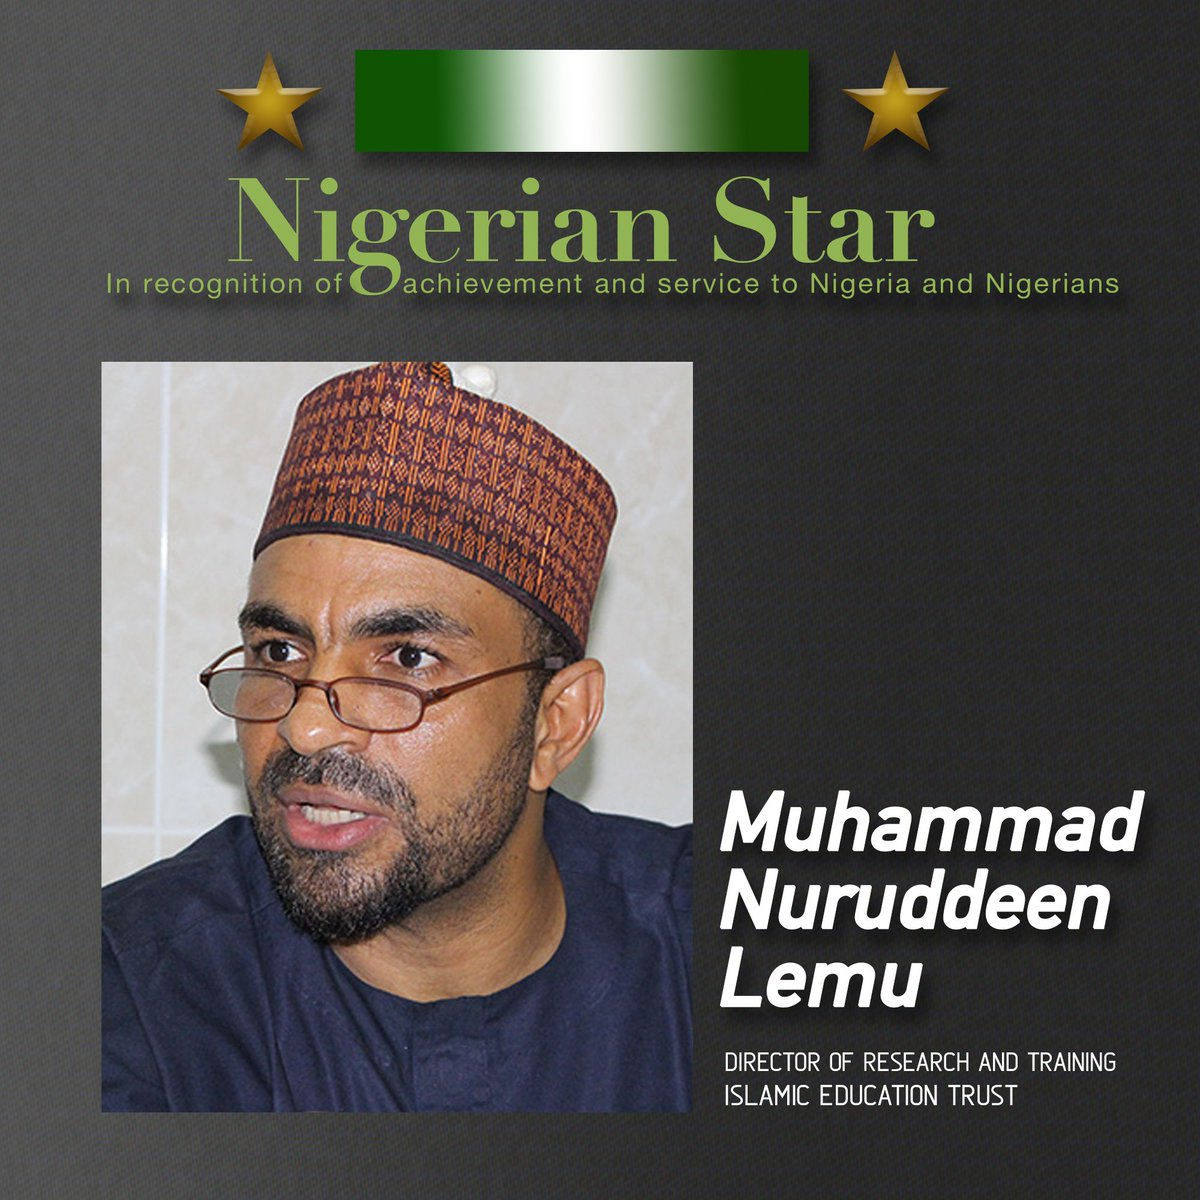 #NigerianStar Muhammad Nuruddeen Lemu is the Director of Research and Training at the Islamic Education Trust, Minna. He has contributed immensely to peacebuilding, countering violent extremism and interfaith collaborations between Muslims, Christians and other religious groups.<br>http://pic.twitter.com/zO9G21NtYv